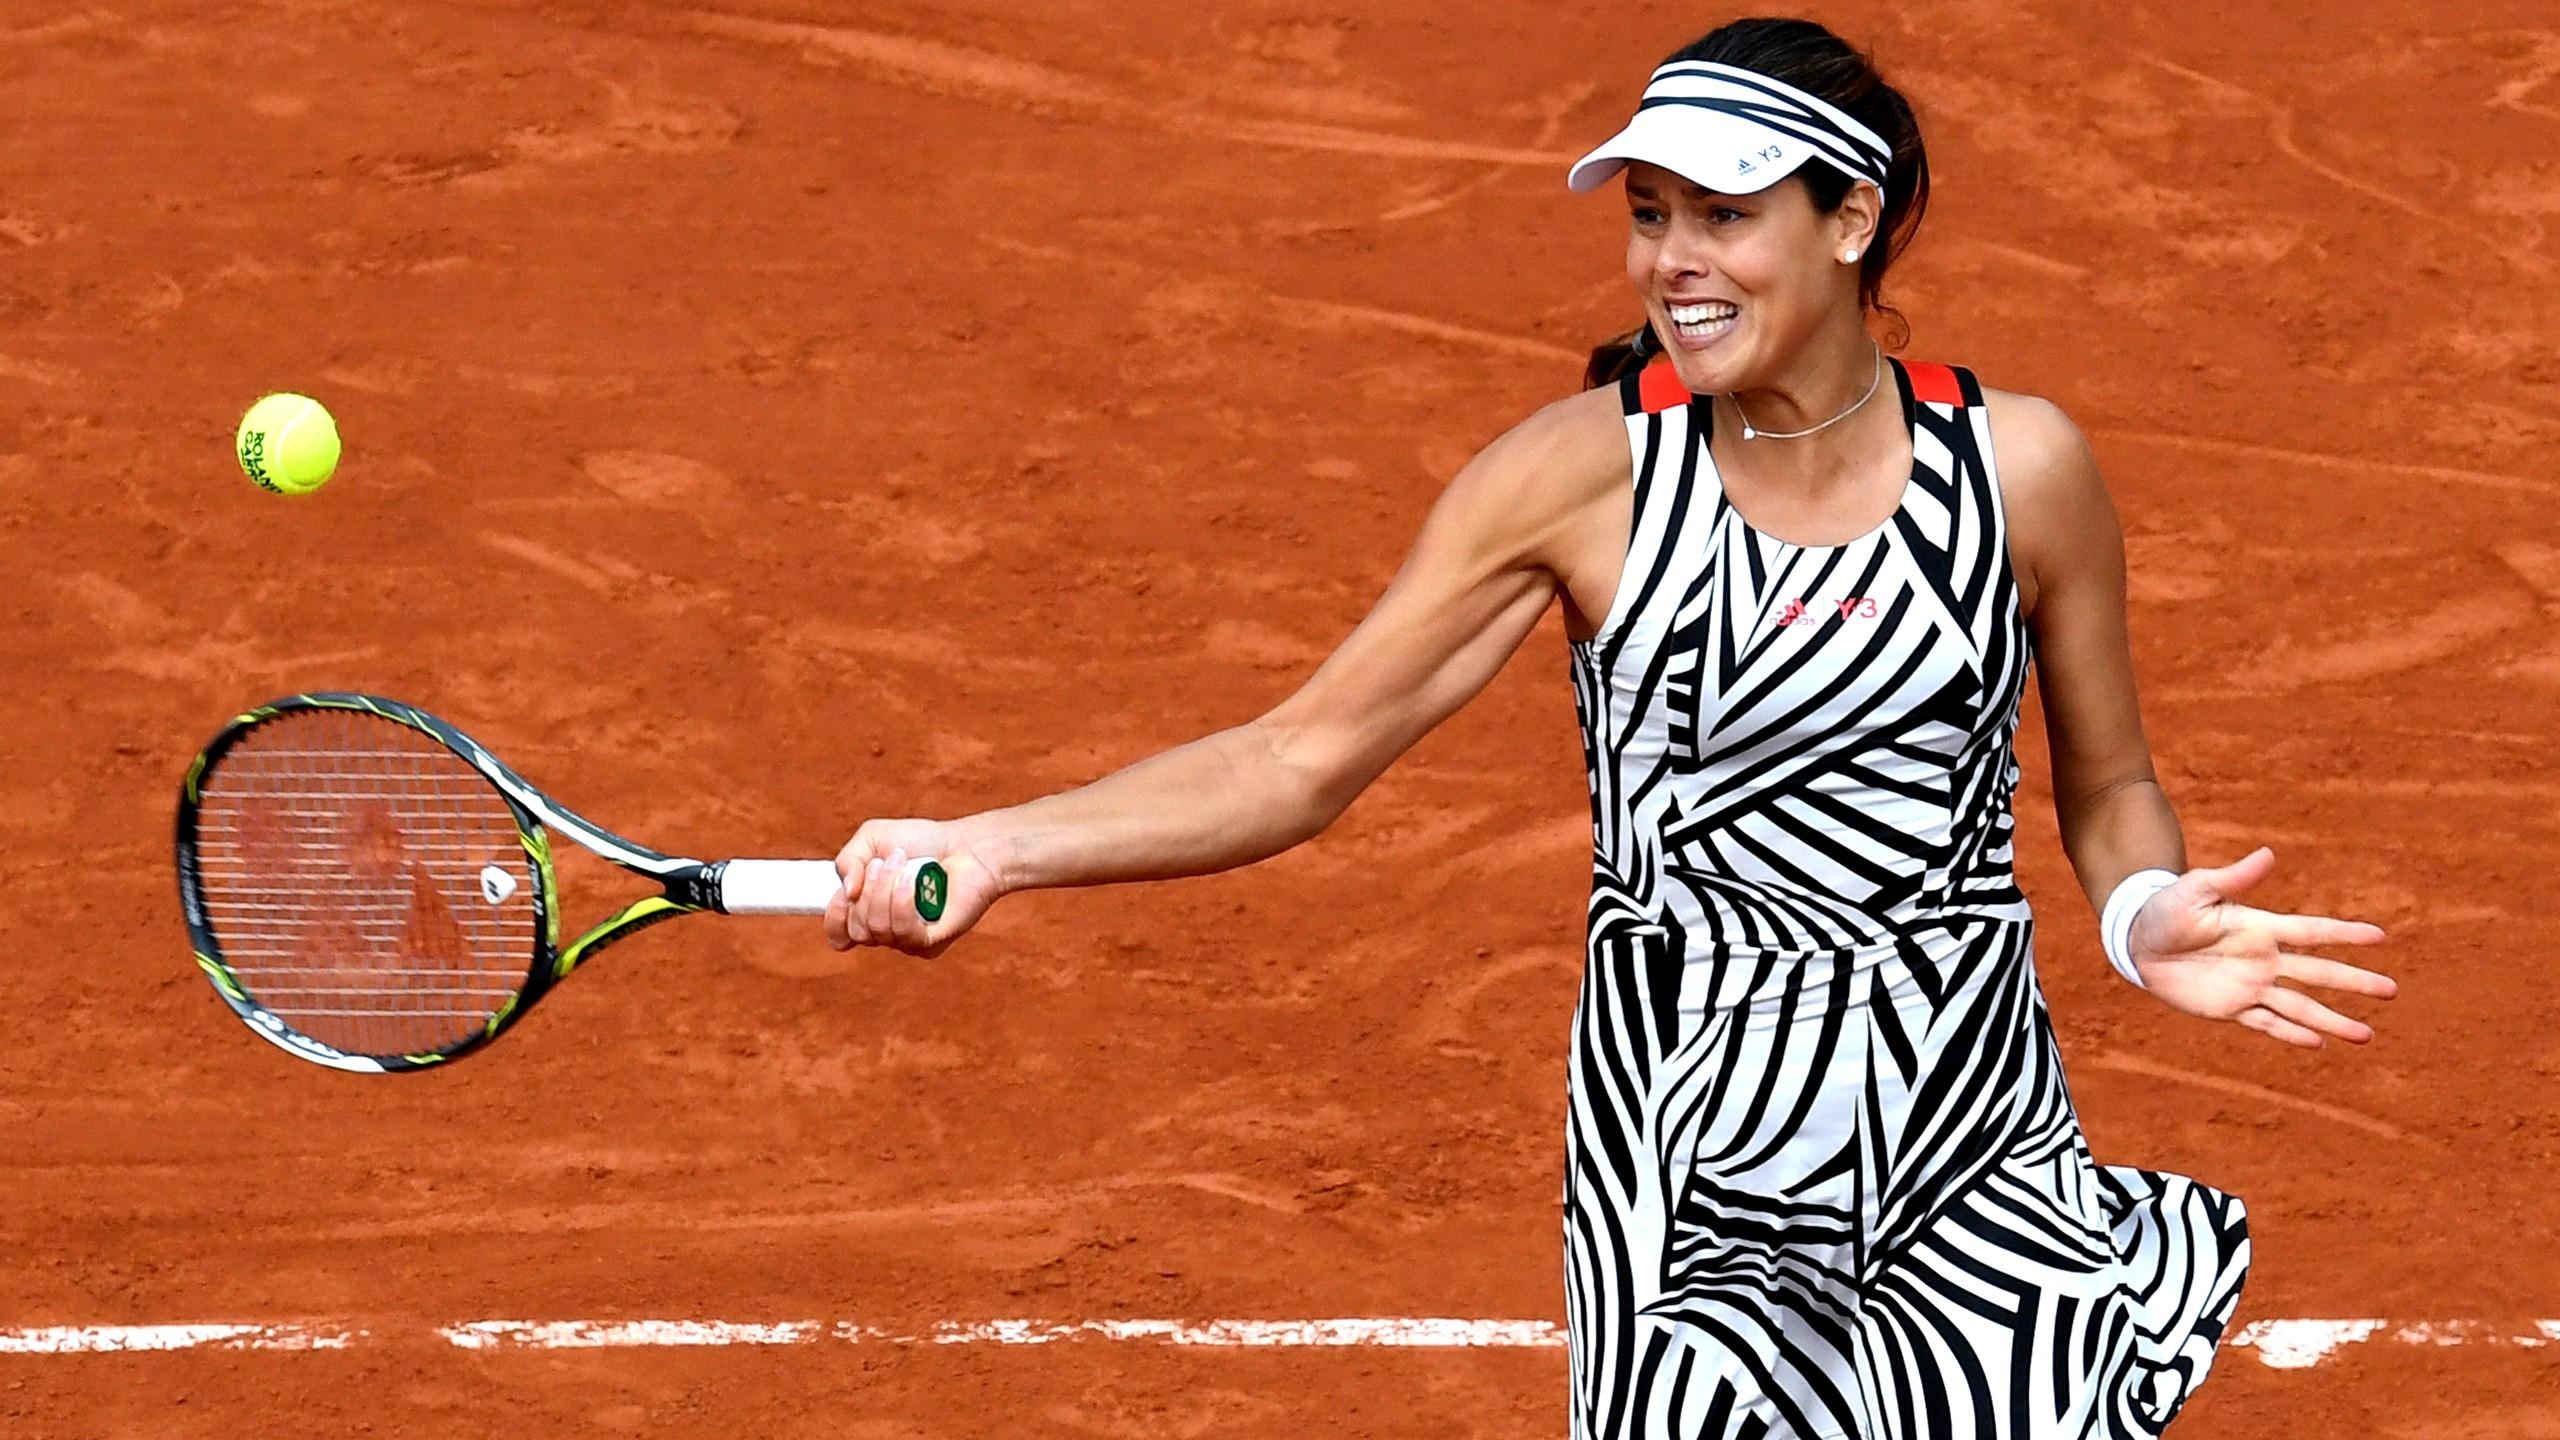 Ana Ivanovic bei den French Open